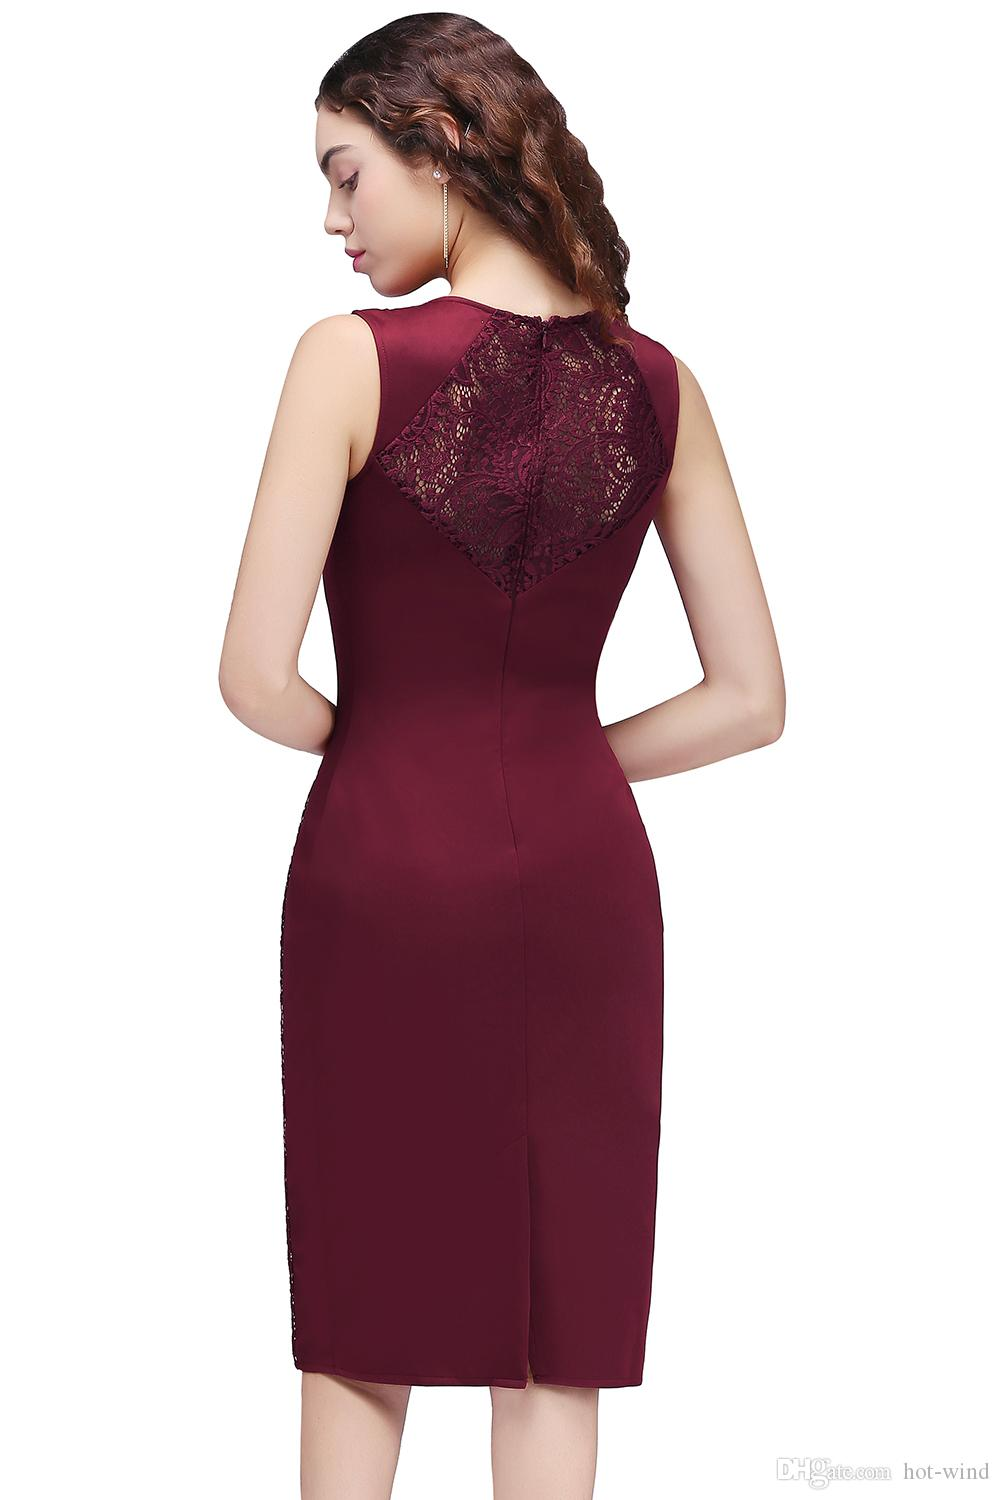 Elegant Burgundy Sheath Knee Length Short Prom Dresses 2020 New Arrival Lace Sleeveless Short Homecoming Dresses Formal Party Wear CPS681